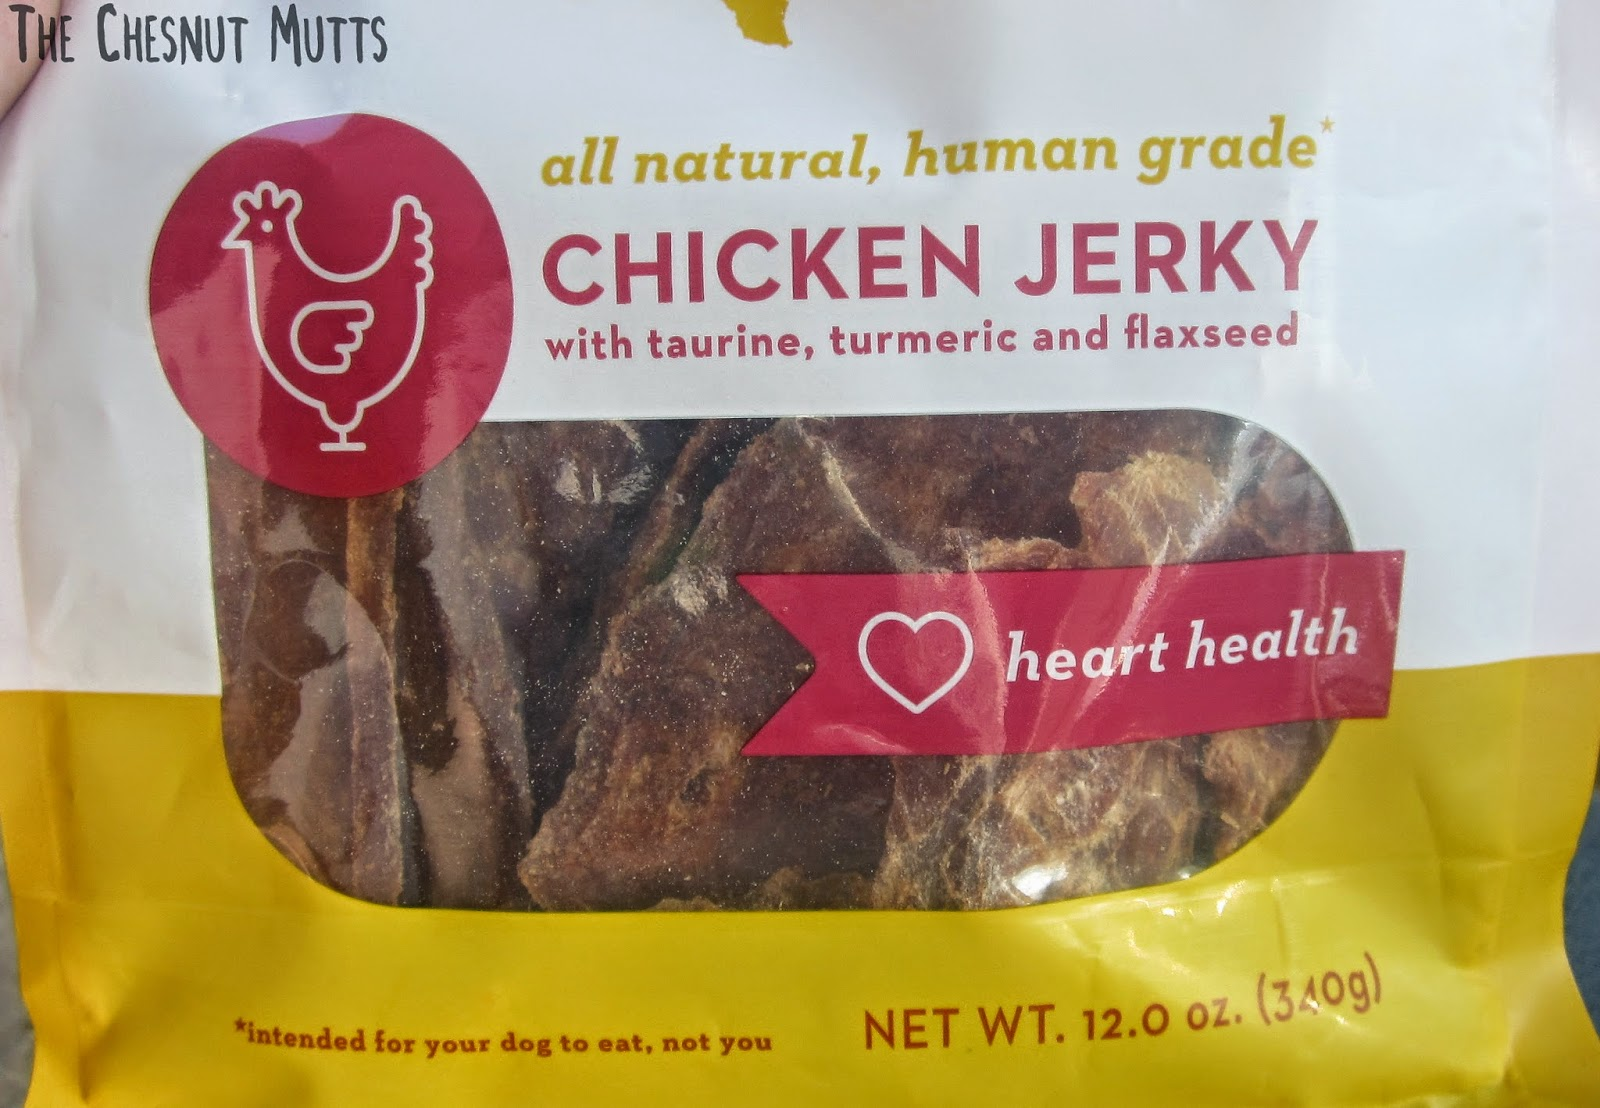 all natural, human grade chicken jerky with taurine, turmeric and flaxseed